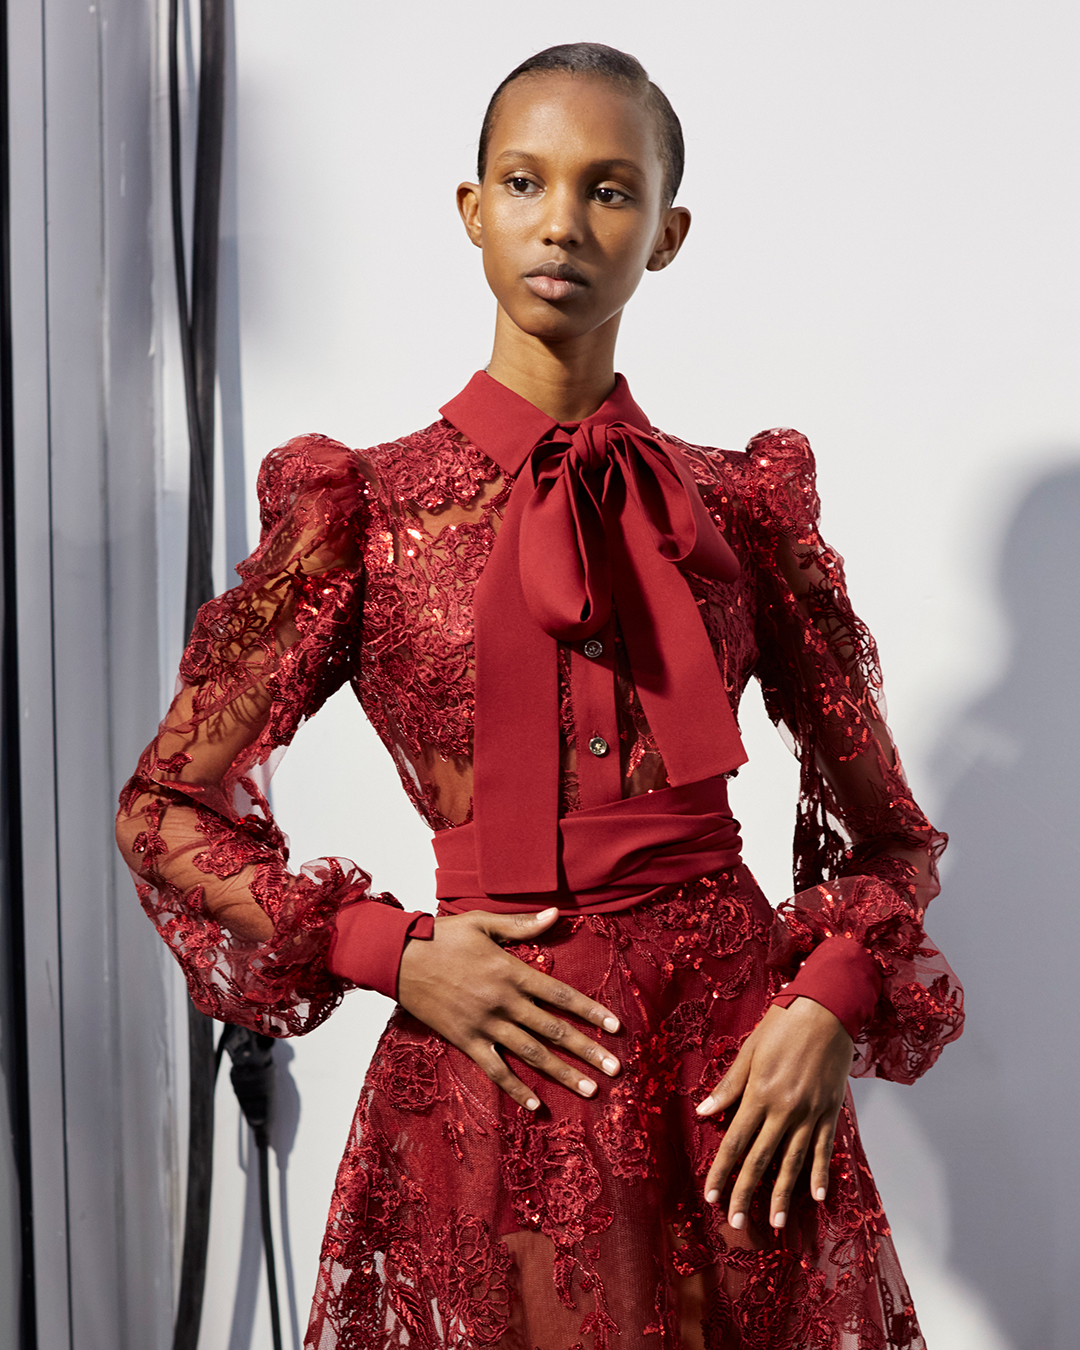 Elie Saab Looks to Spain for Fall/Winter 2020